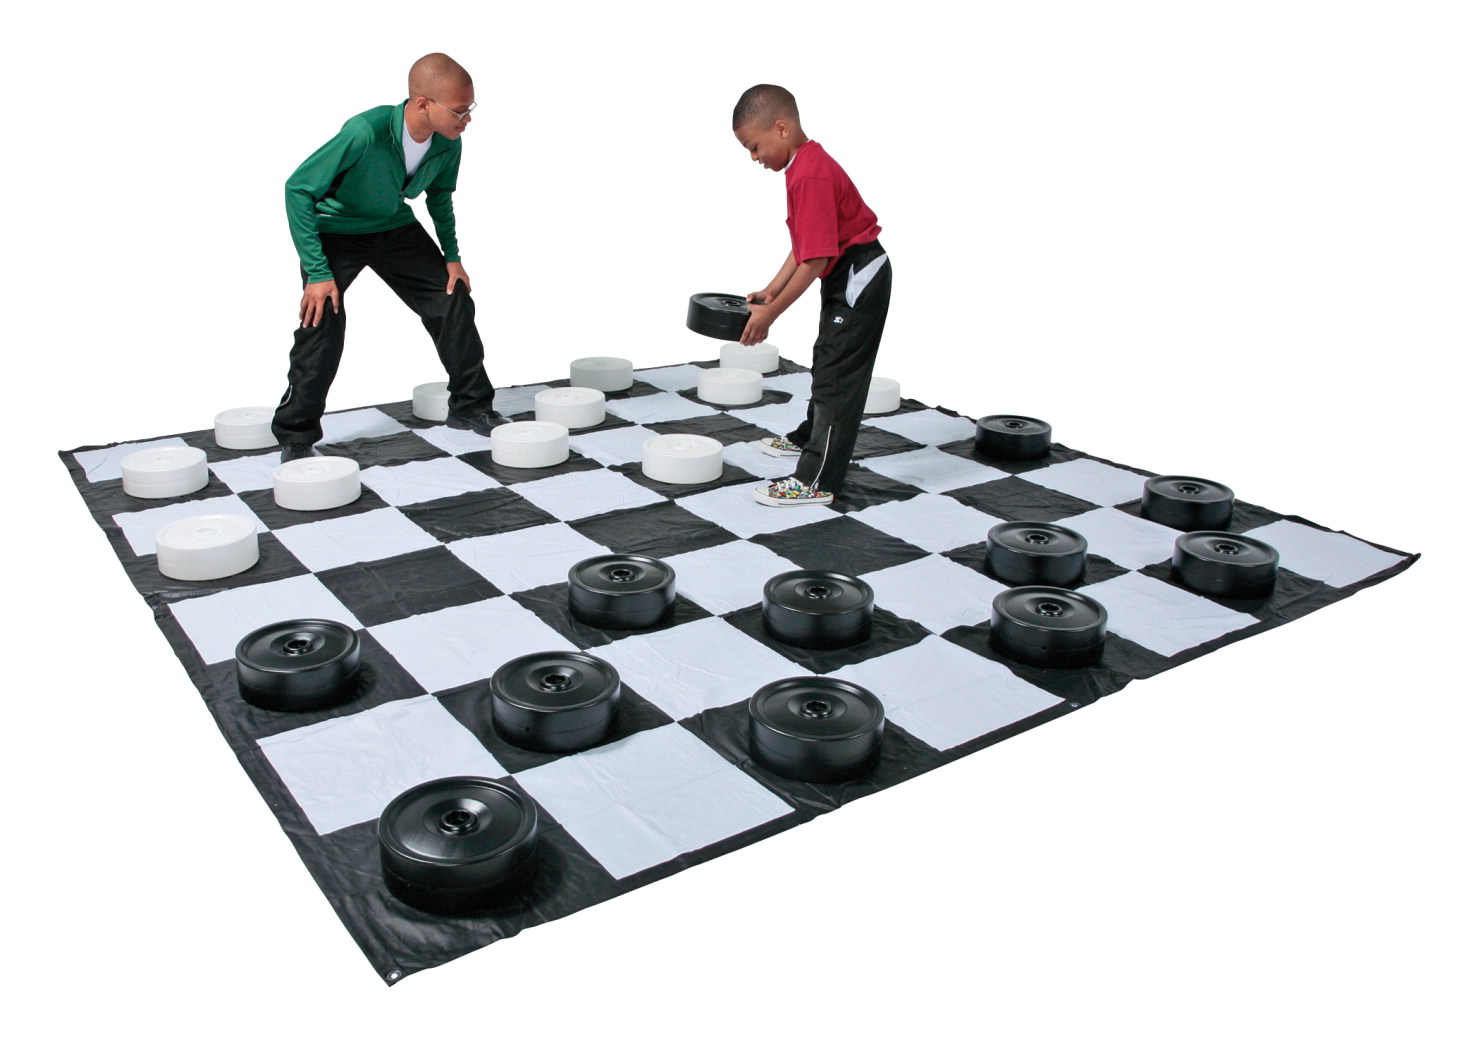 toys-learning-games-skill-team-building-activities-equipment-1321012-dom-giant-checkers-only-set-of-24-white-and-black-4